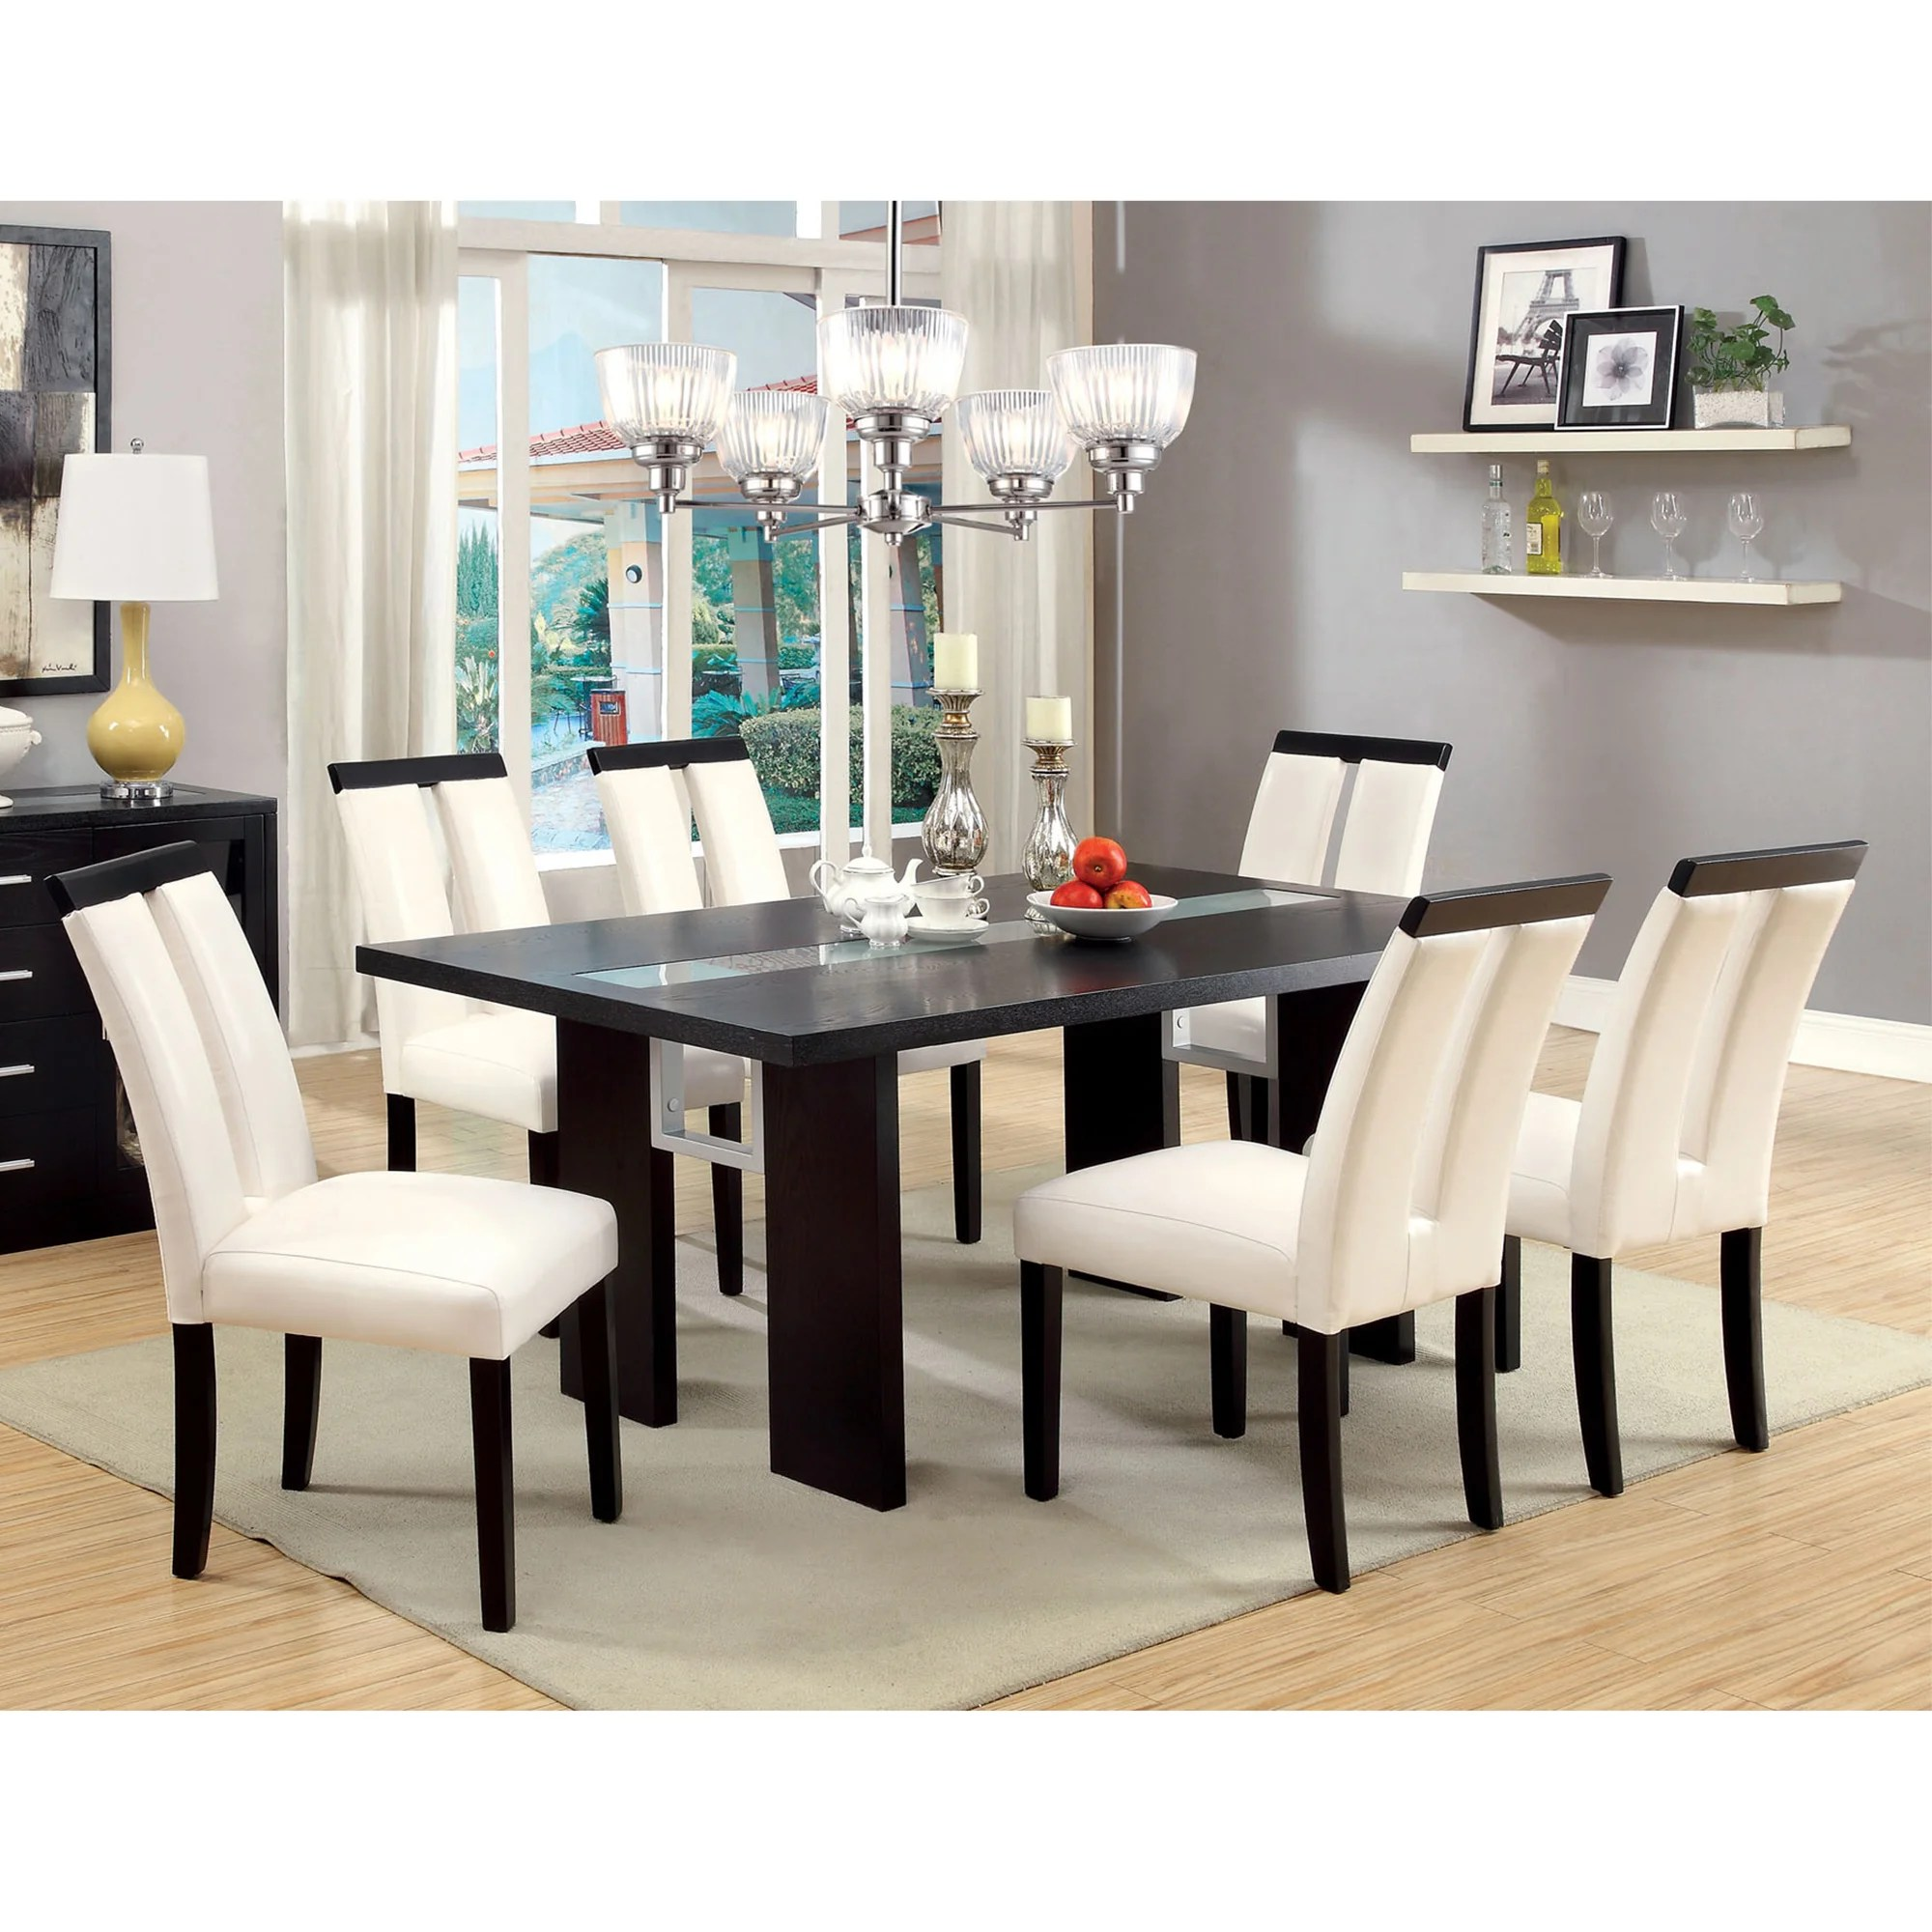 Furniture Overstock Shop Furniture Of America Lumina 7 Piece Light Up Two Tone Dining